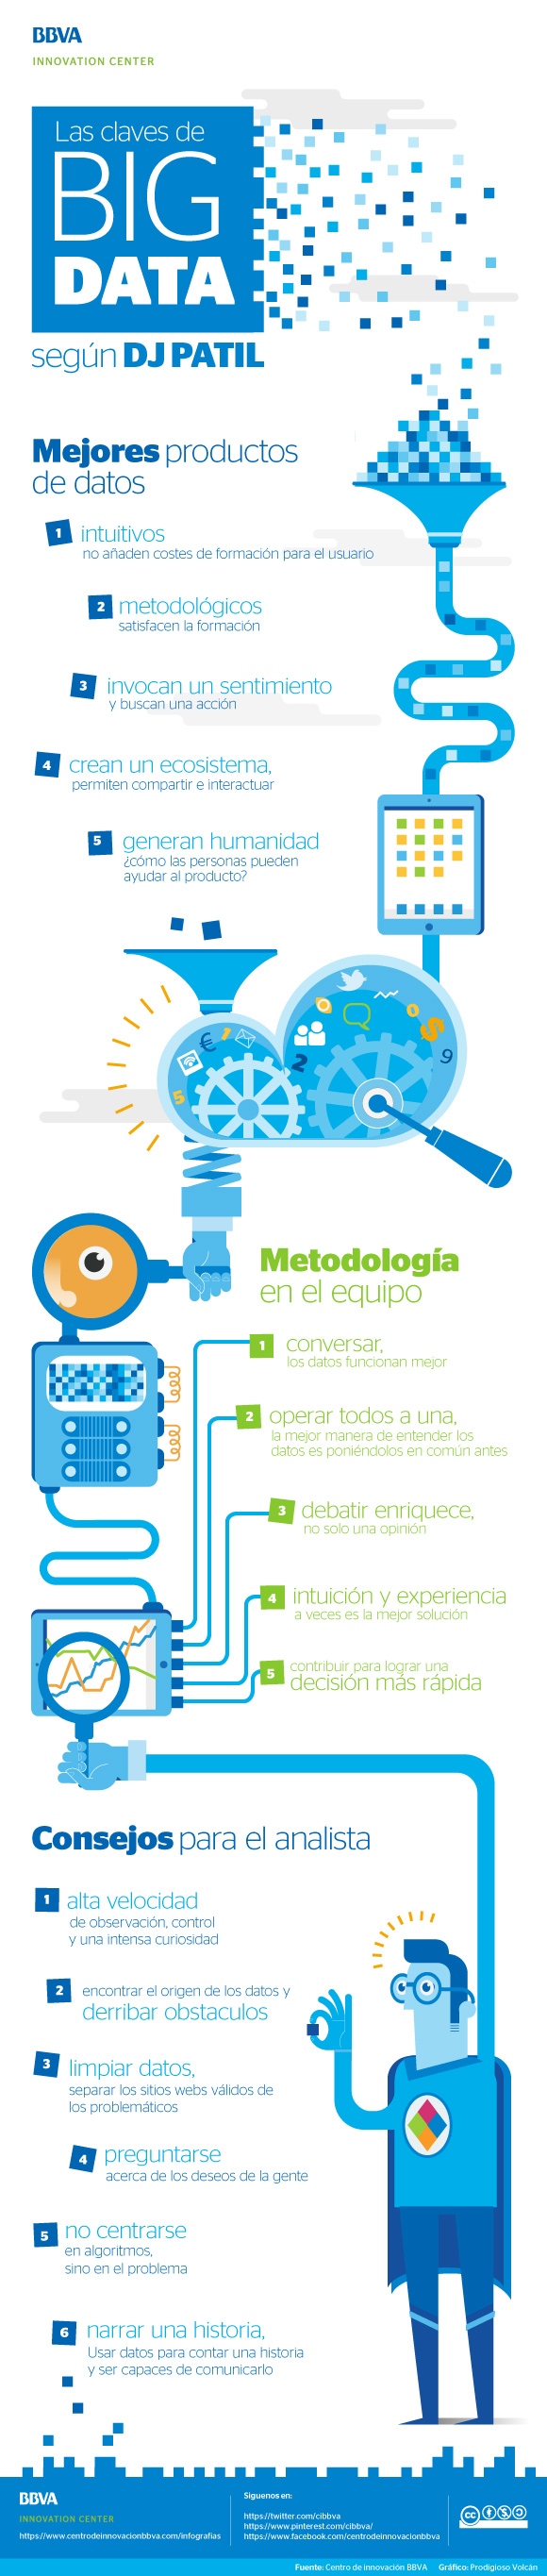 infografia-bbva-innovation-center-big-data-por-dj-patil_esp